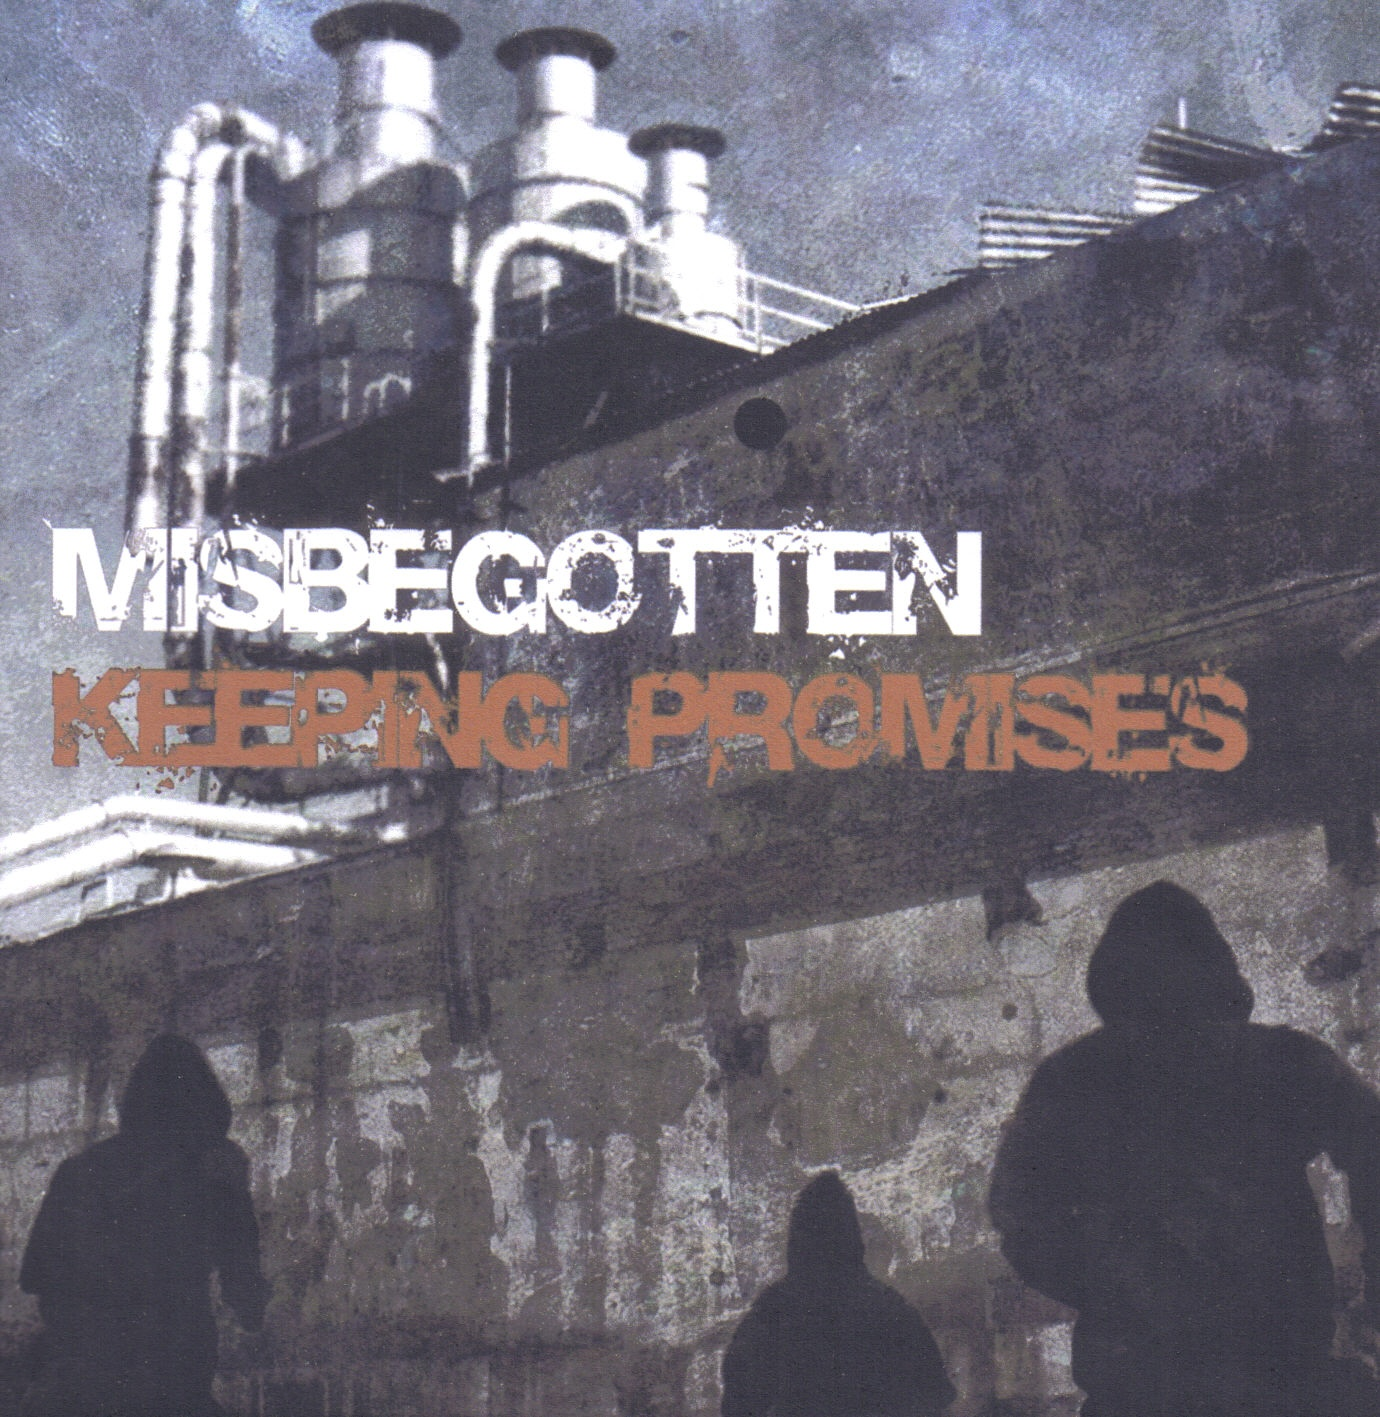 MISBEGOTTEN Keeping Promises